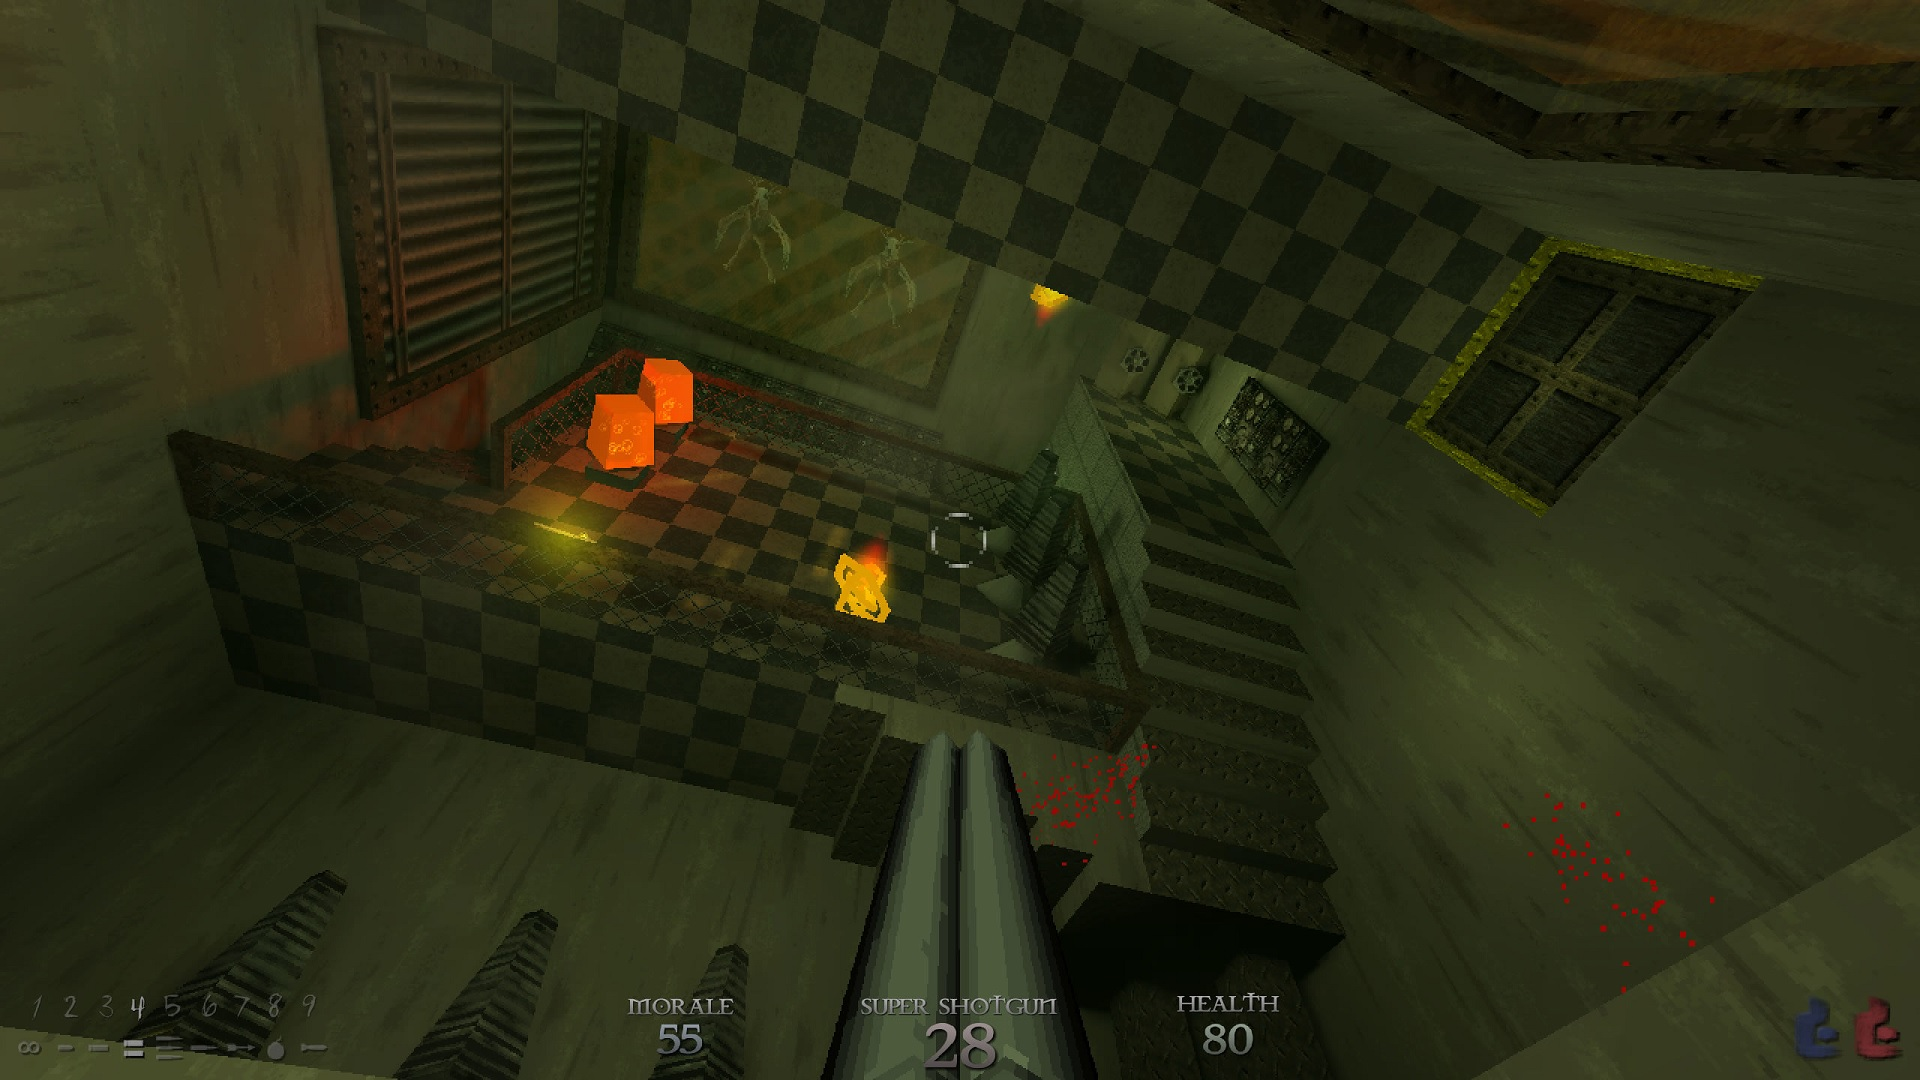 The low-poly architecture of '90s shooters like Quake is back to